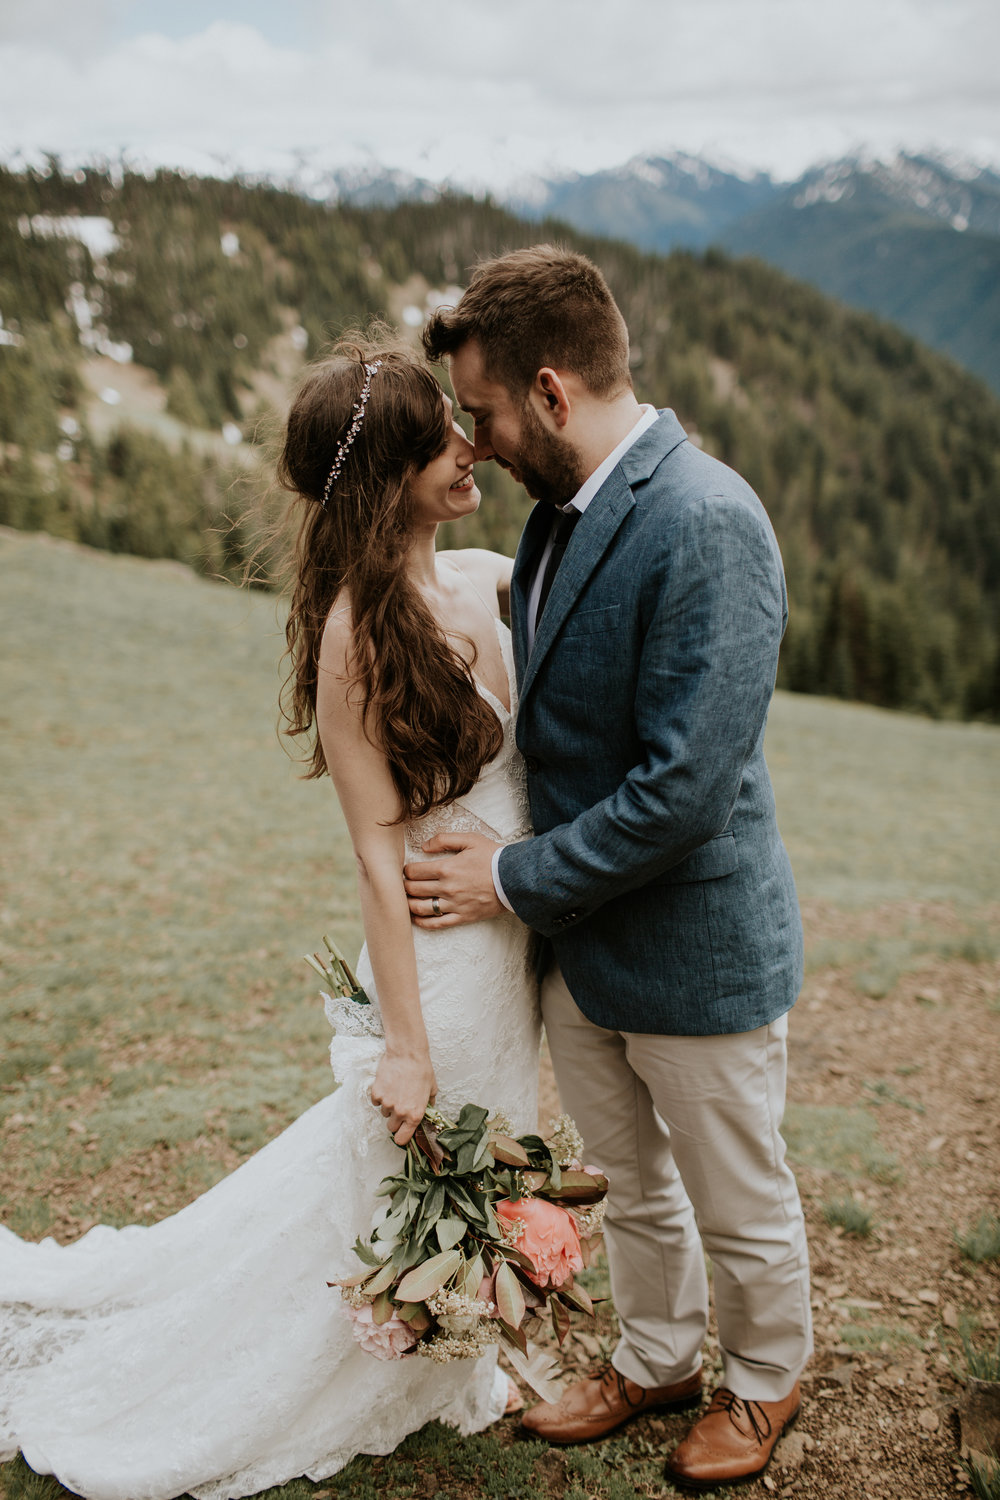 PNW-elopement-wedding-engagement-olympic national park-port angeles-hurricane ridge-lake crescent-kayla dawn photography- photographer-photography-kayladawnphoto-211.jpg